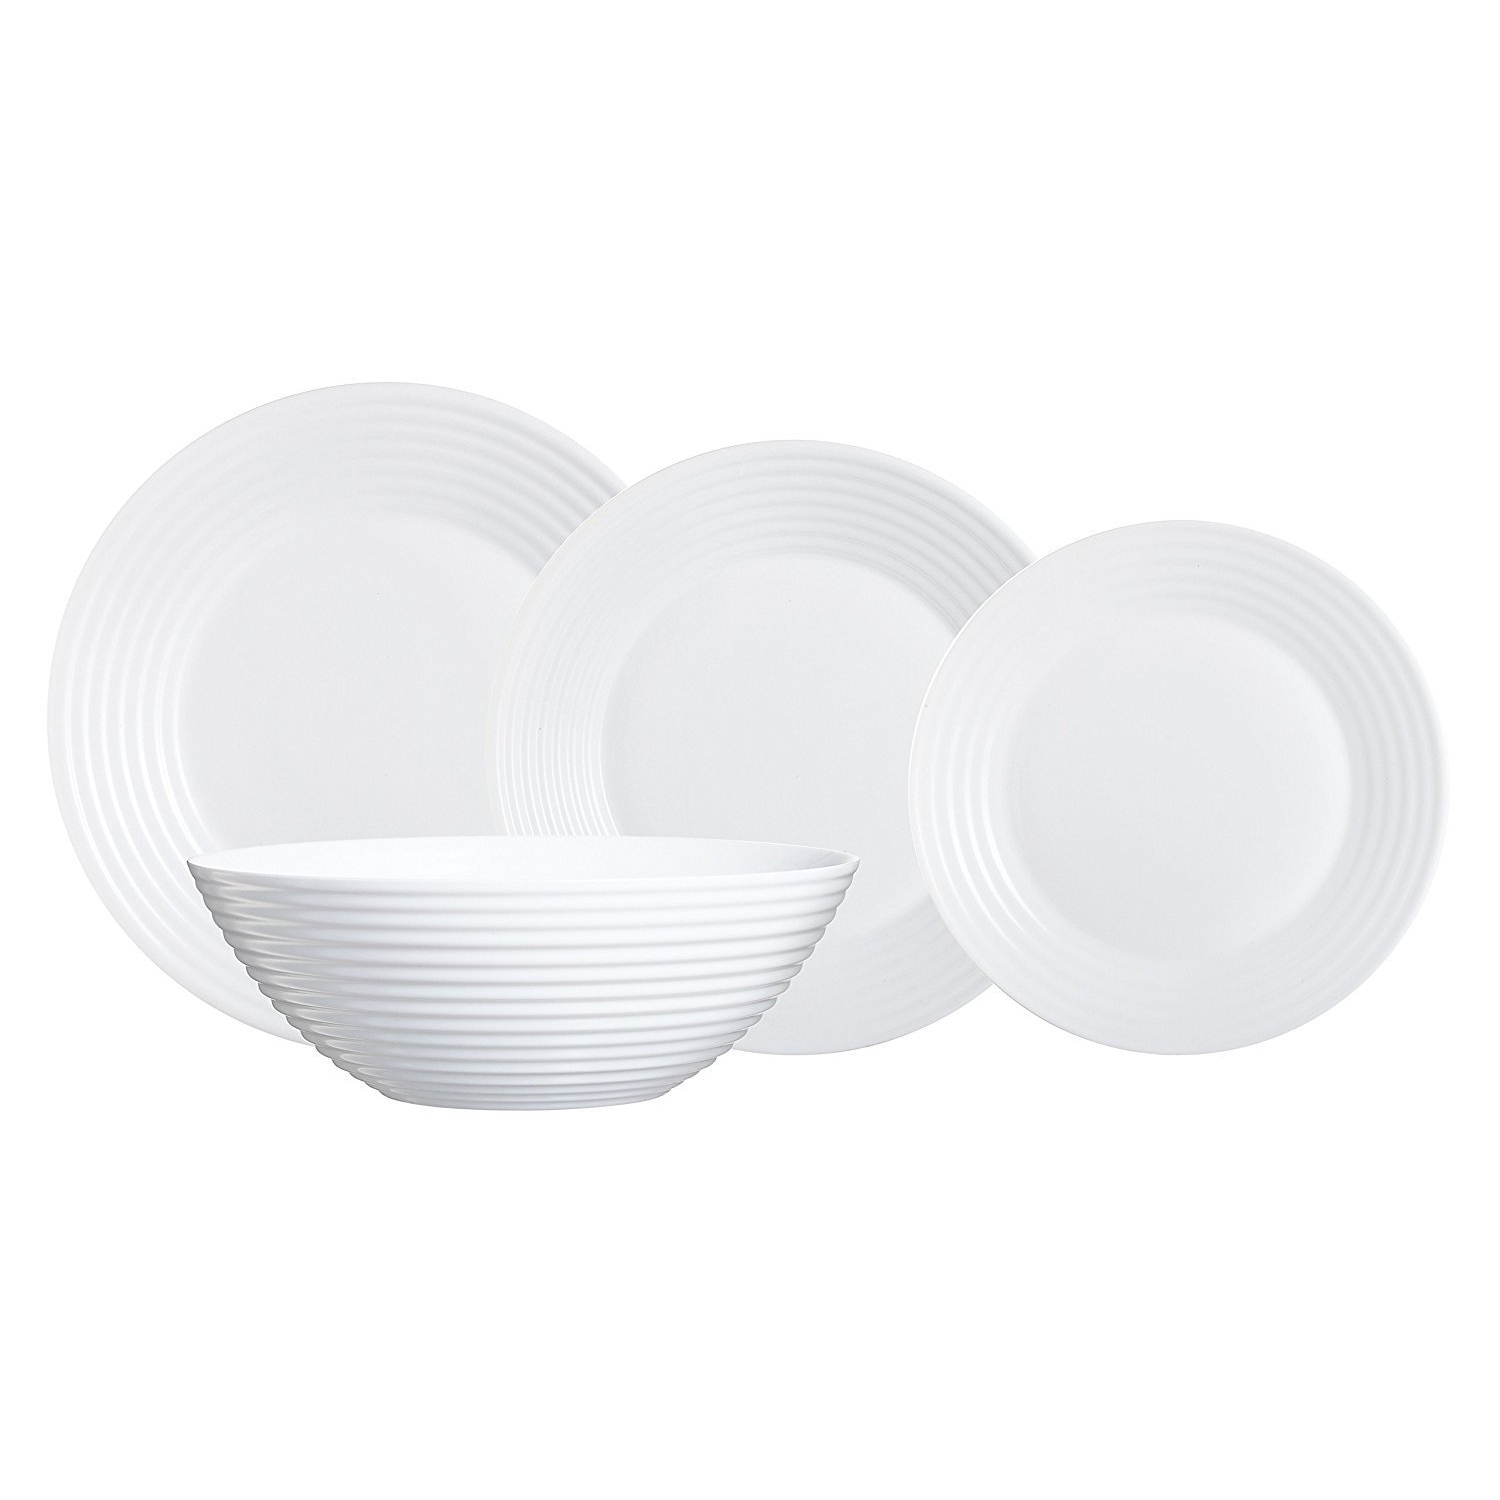 Luminarc 19 piece dinner set plate dessert plate soup bowl for Amazon vajillas completas